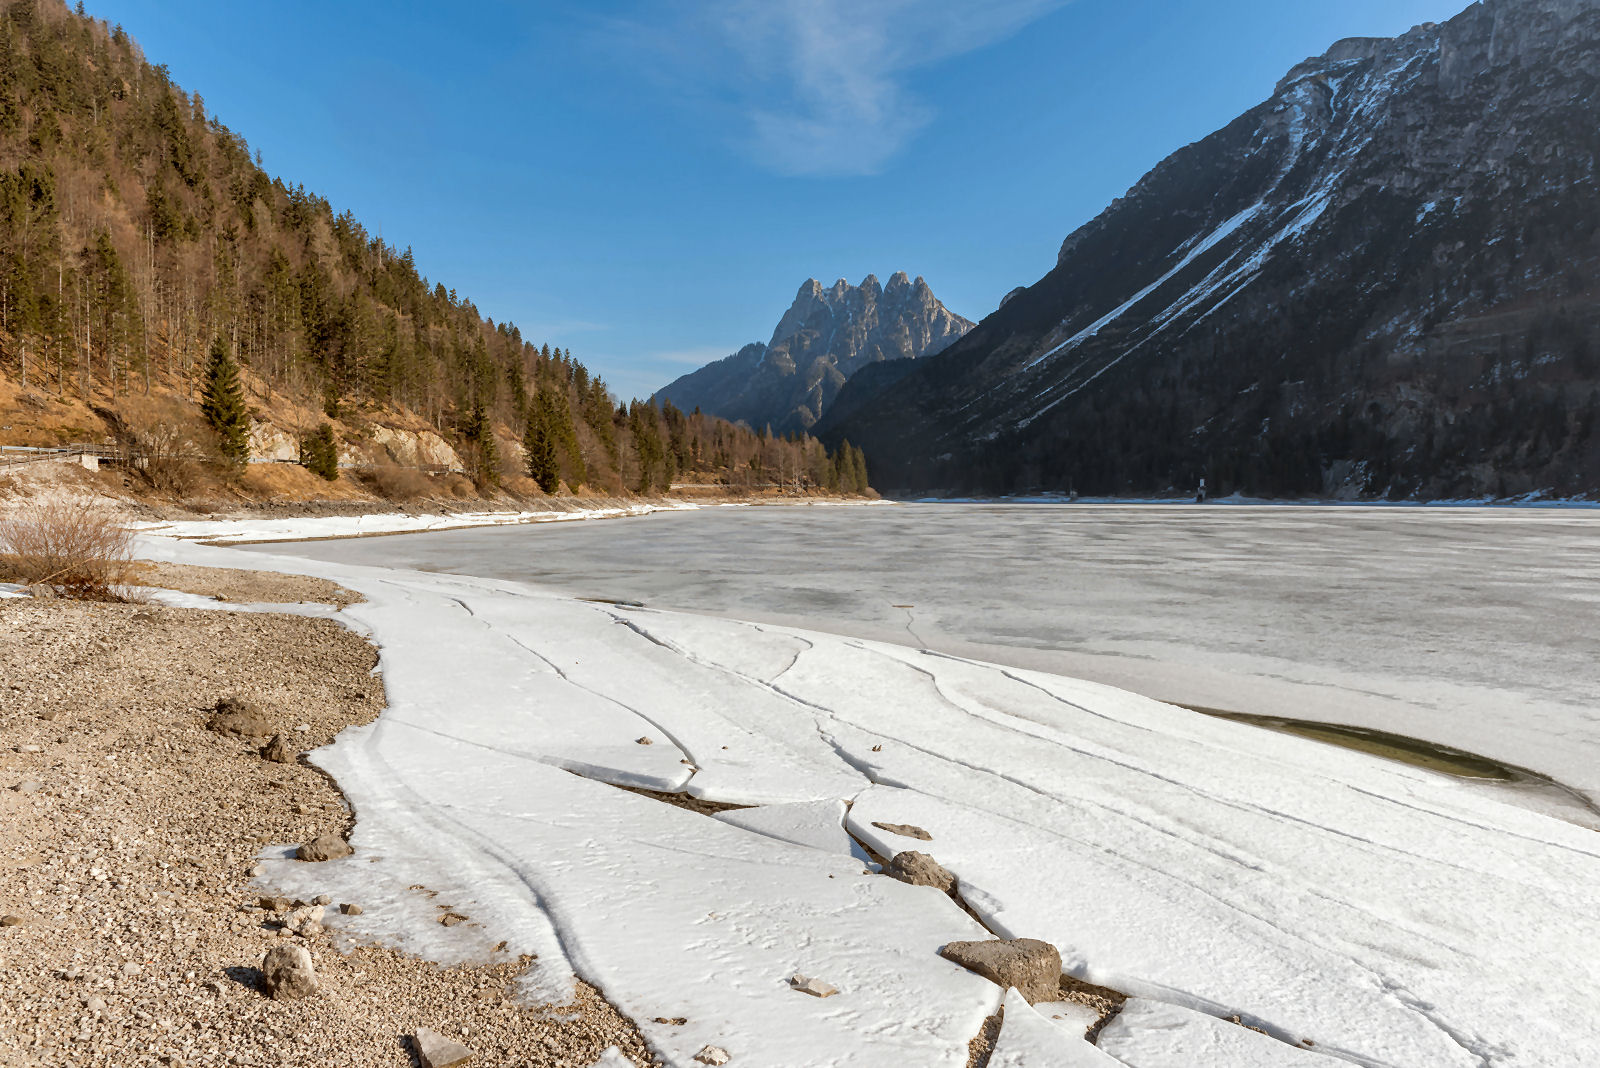 The frozen Lake Predil in winter with the Cinque Punte mountain in the background